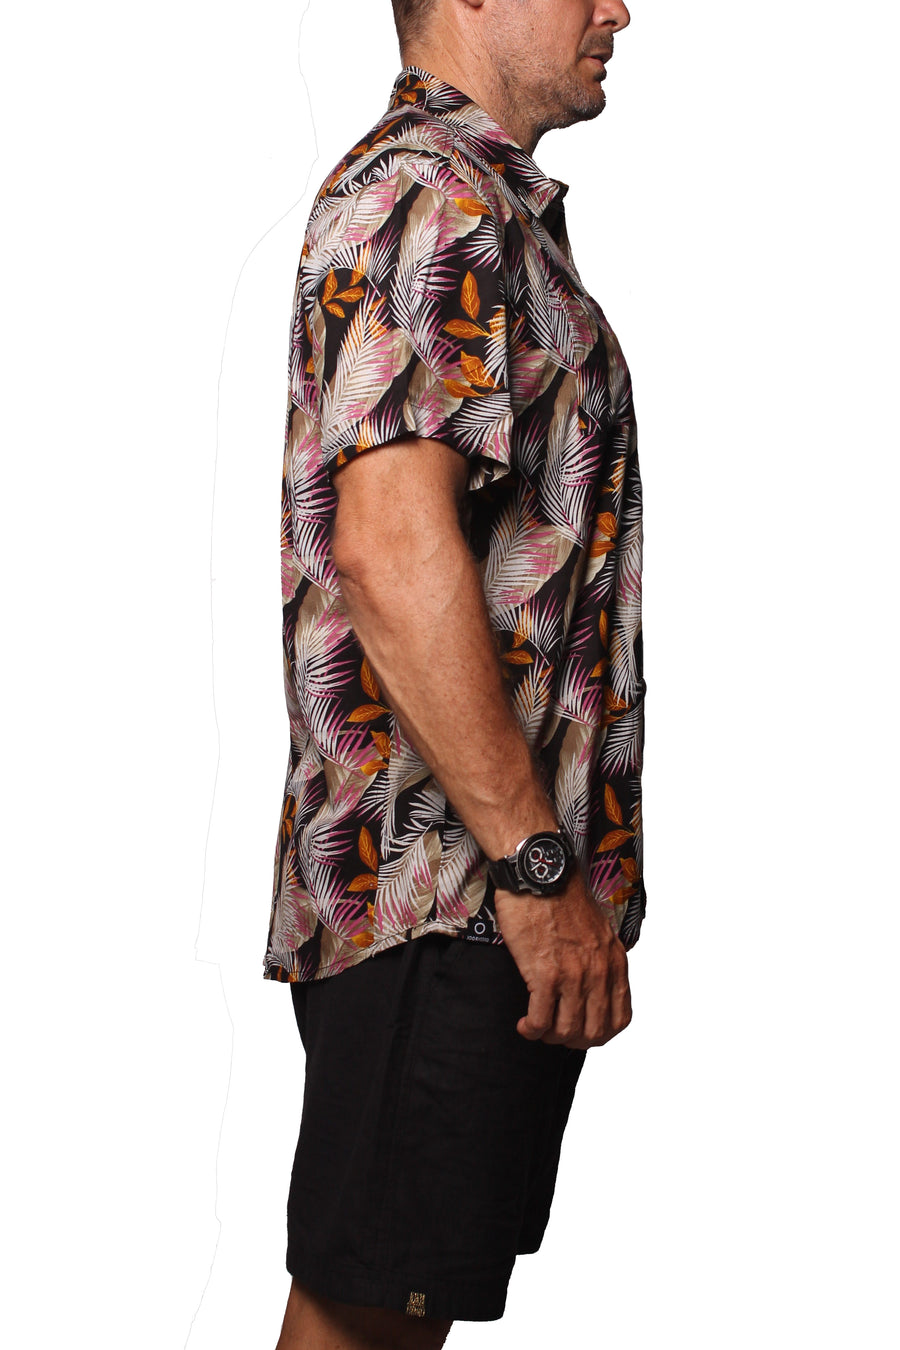 Shirt ST Rayon Palm Leaves Black - Greenrock Indonesia